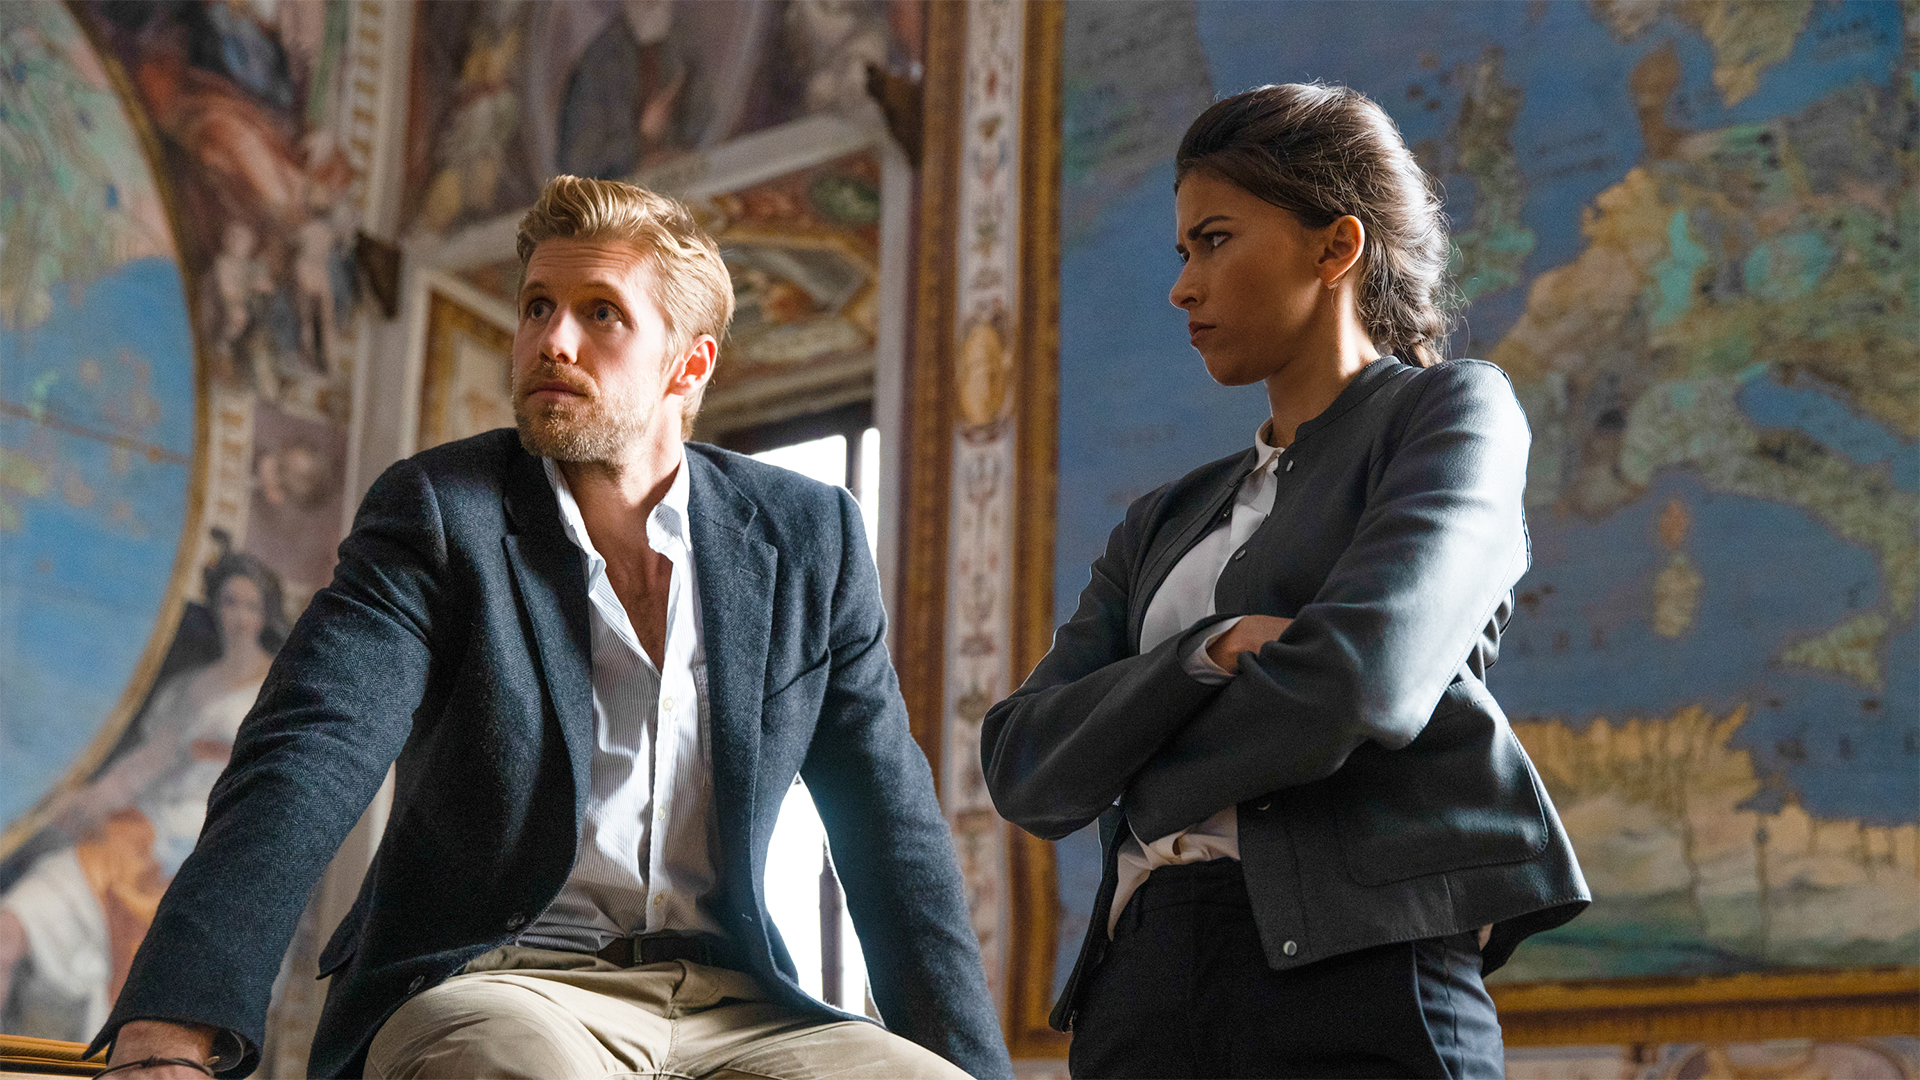 Watch Blood & Treasure Season 1 Episode 1: The Curse of Cleopatra - Parts I  and II - Full show on CBS All Access